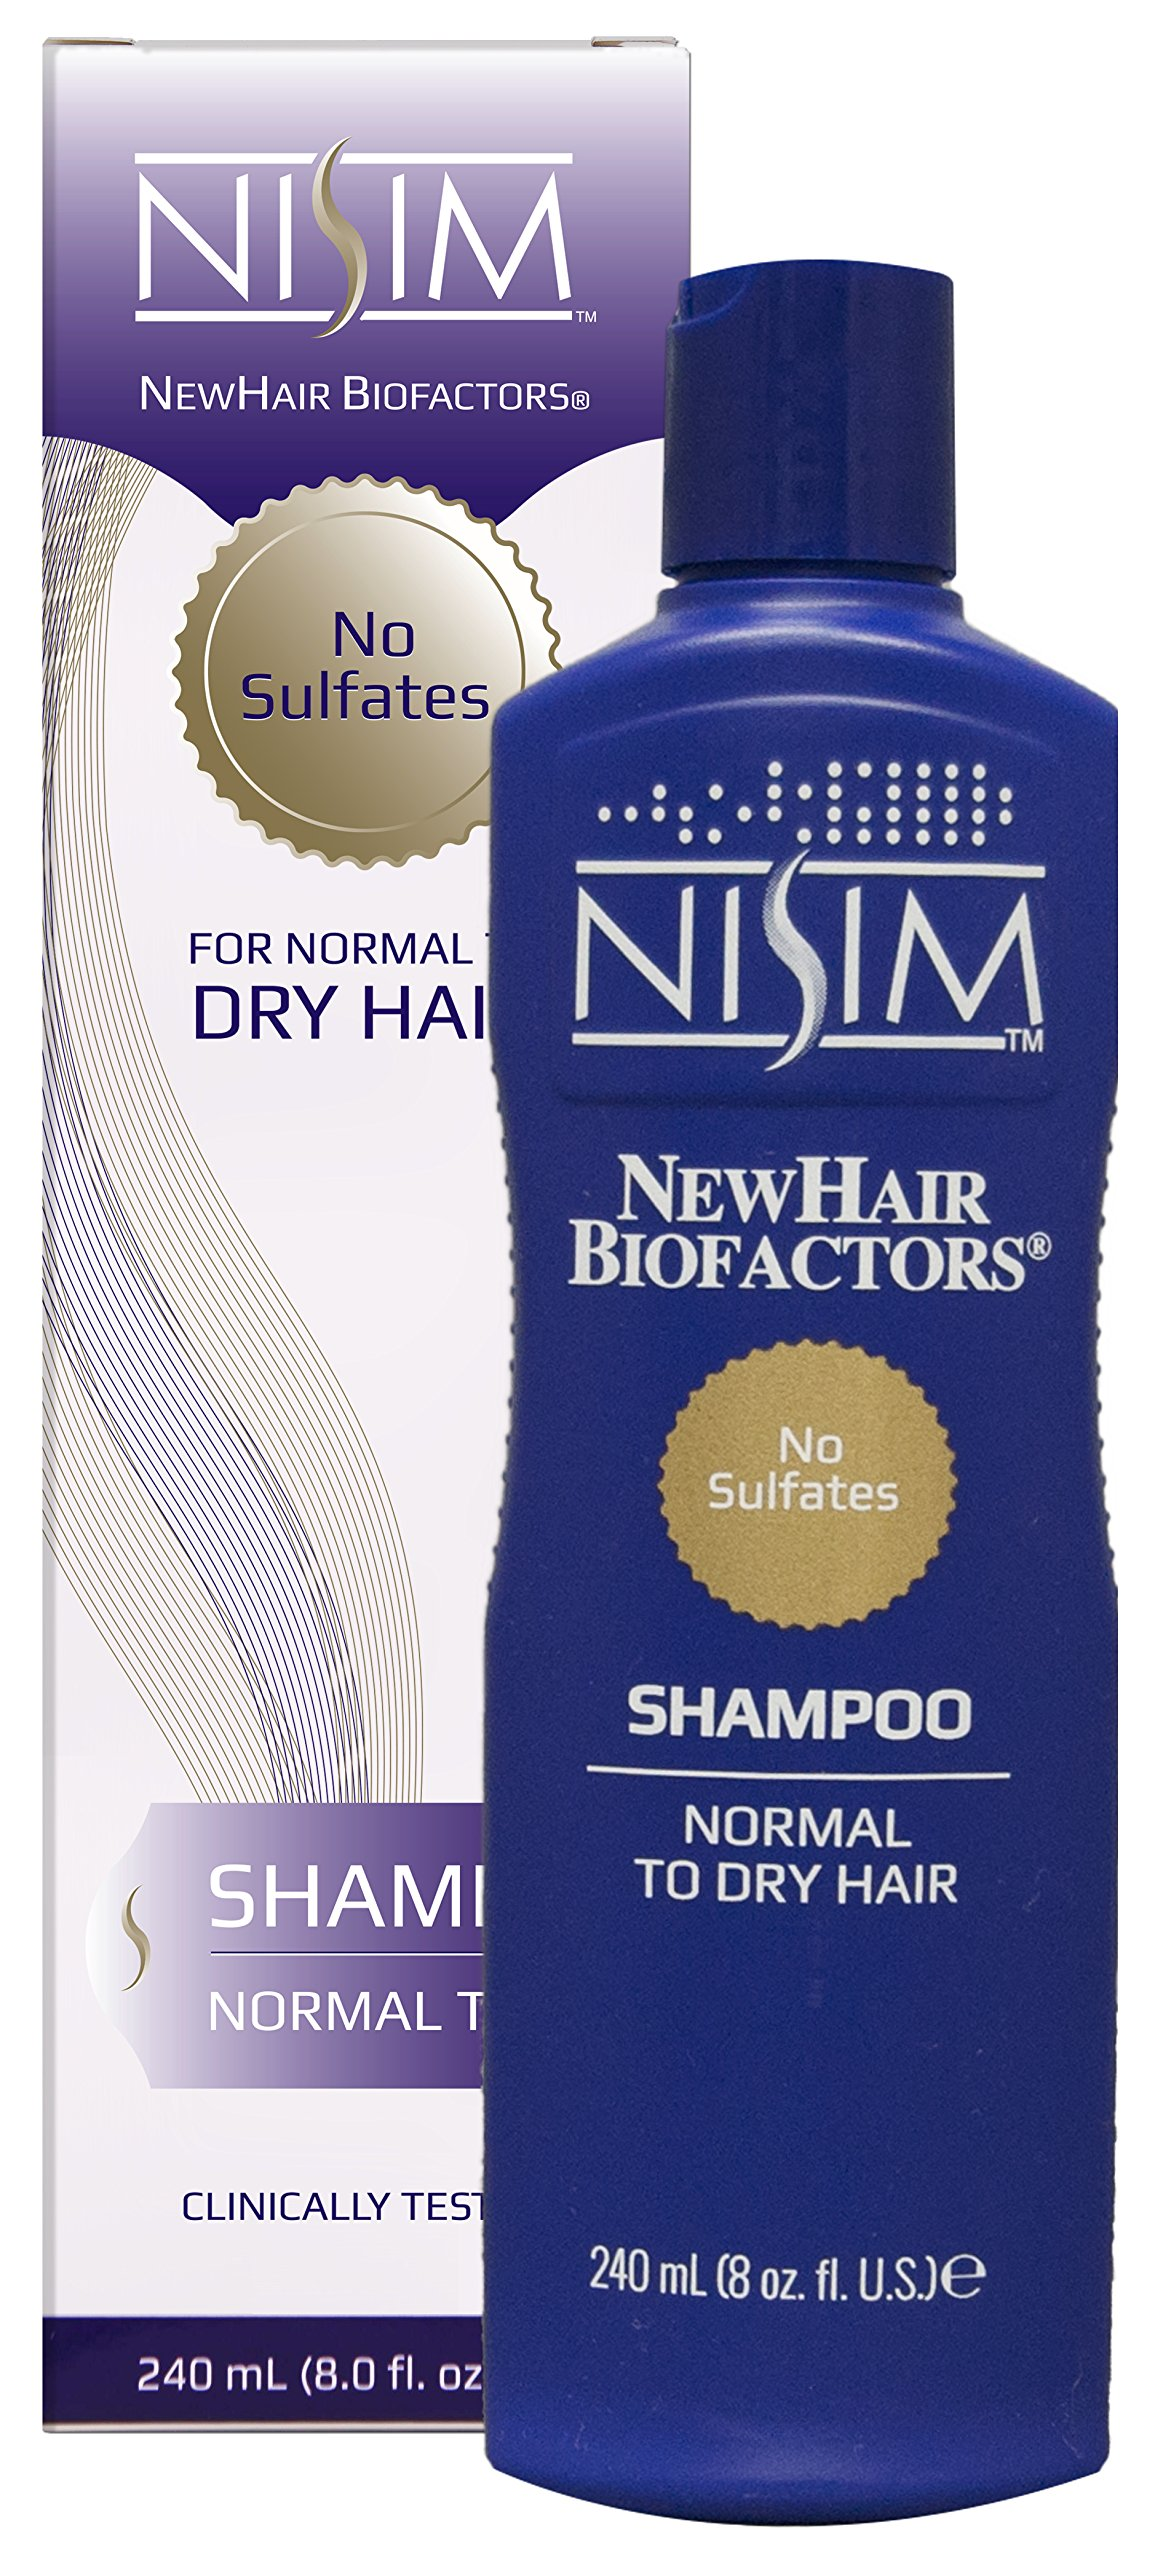 NISIM NewHair BioFactors Shampoo for Normal To Dry Hair - Deep Cleaning Shampoo That Controls Excessive Hair Loss (8 Ounce / 240 Milliliter) by Nisim